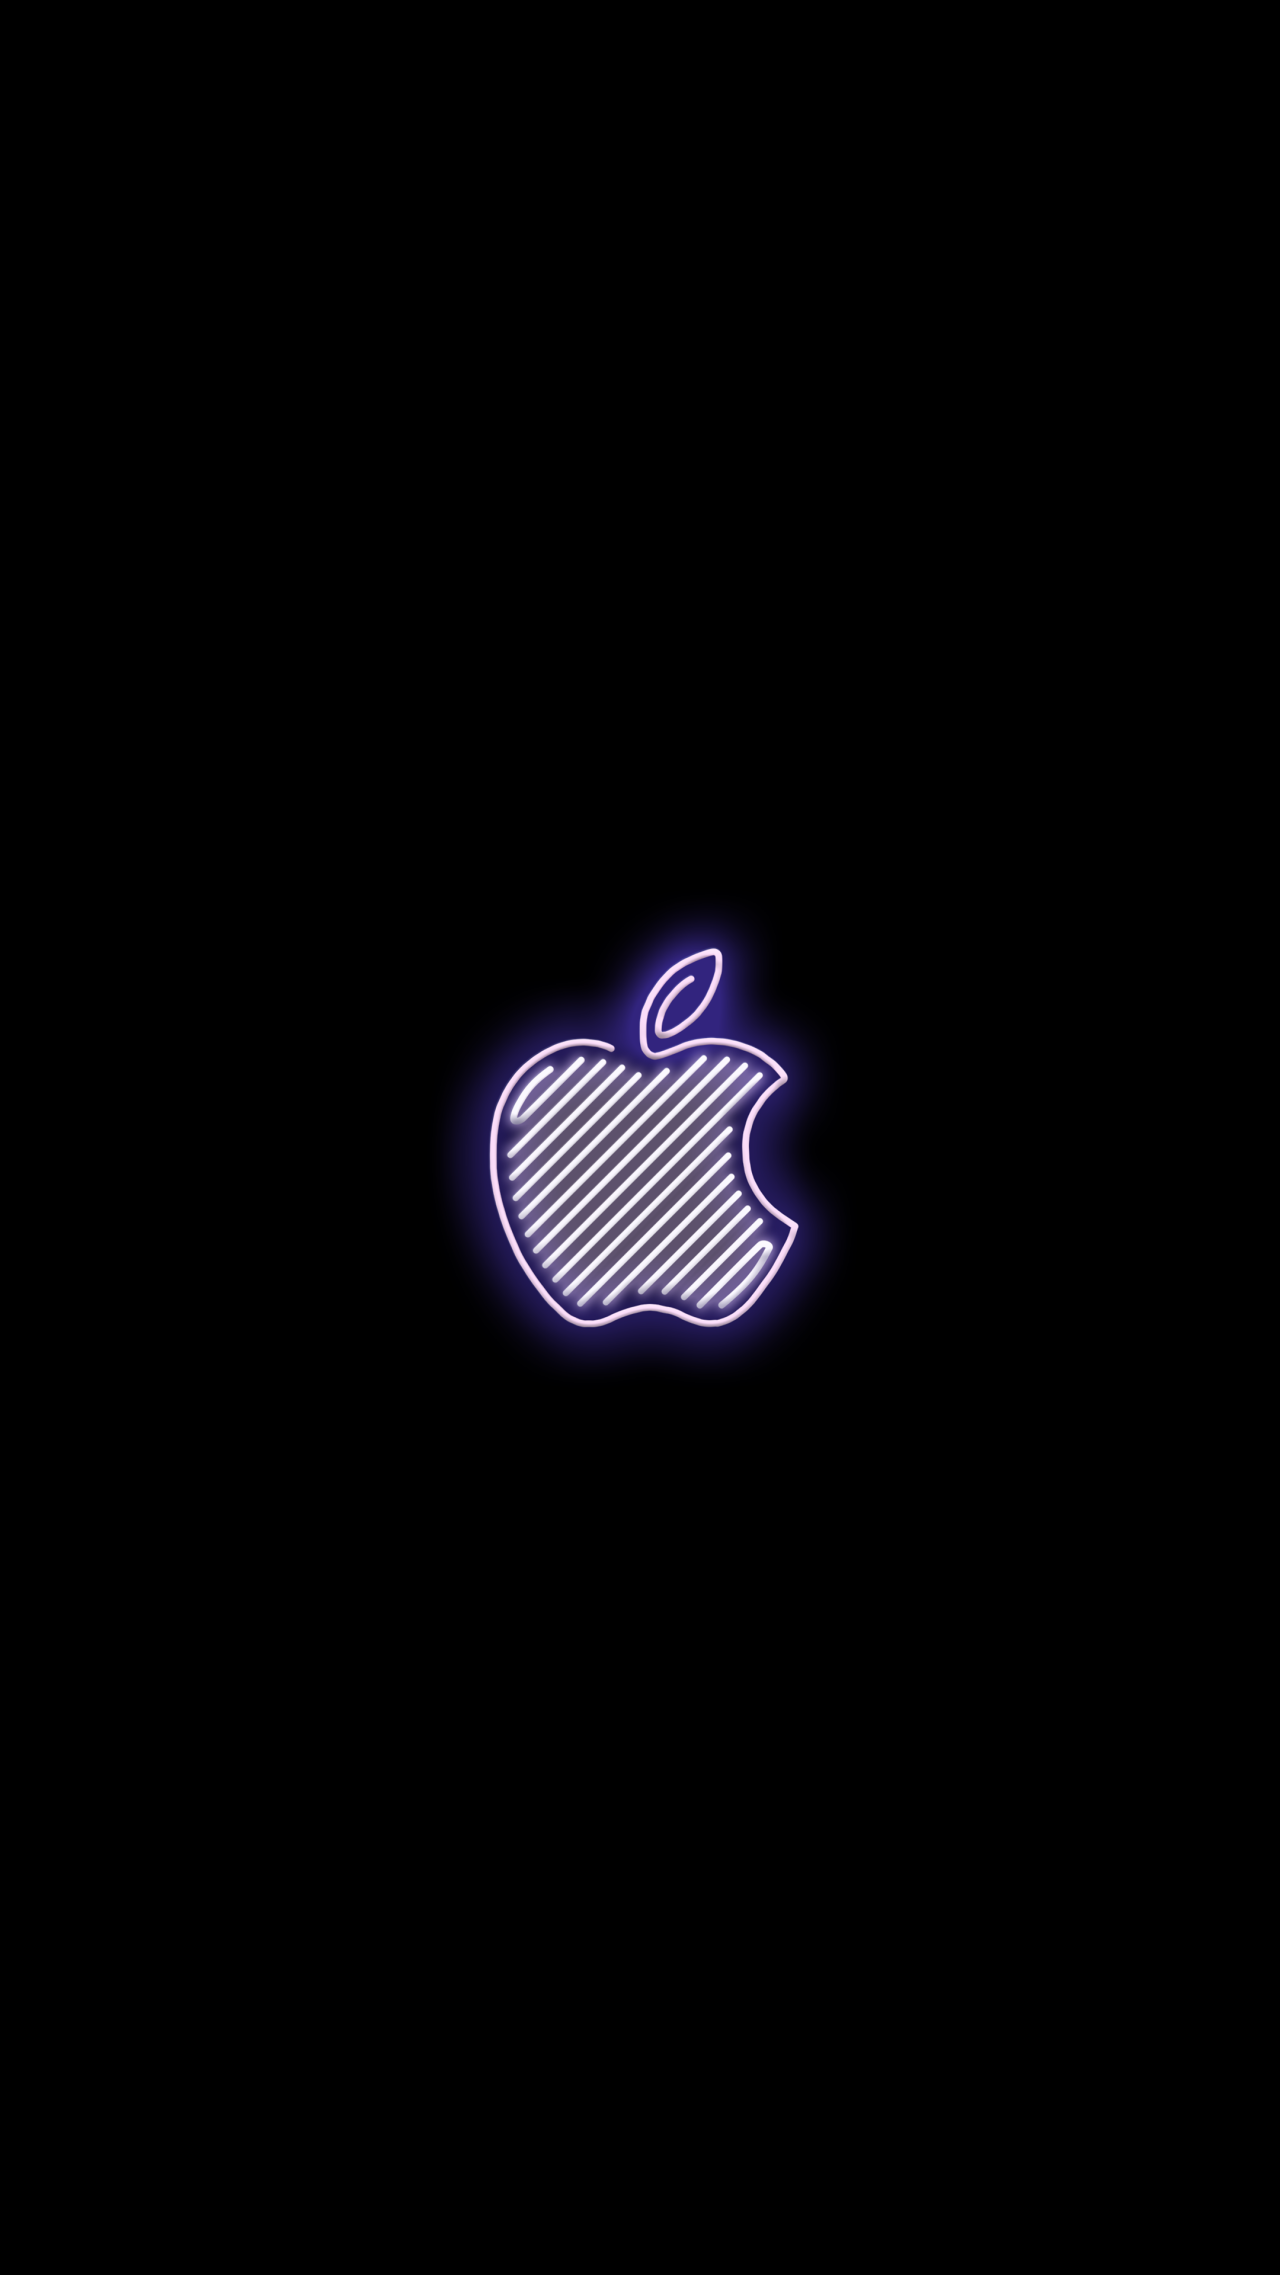 Wallpapers based on Apple's new Tokyo store | Fanboyism | Pinterest | Apple, Wallpaper and Apple ...